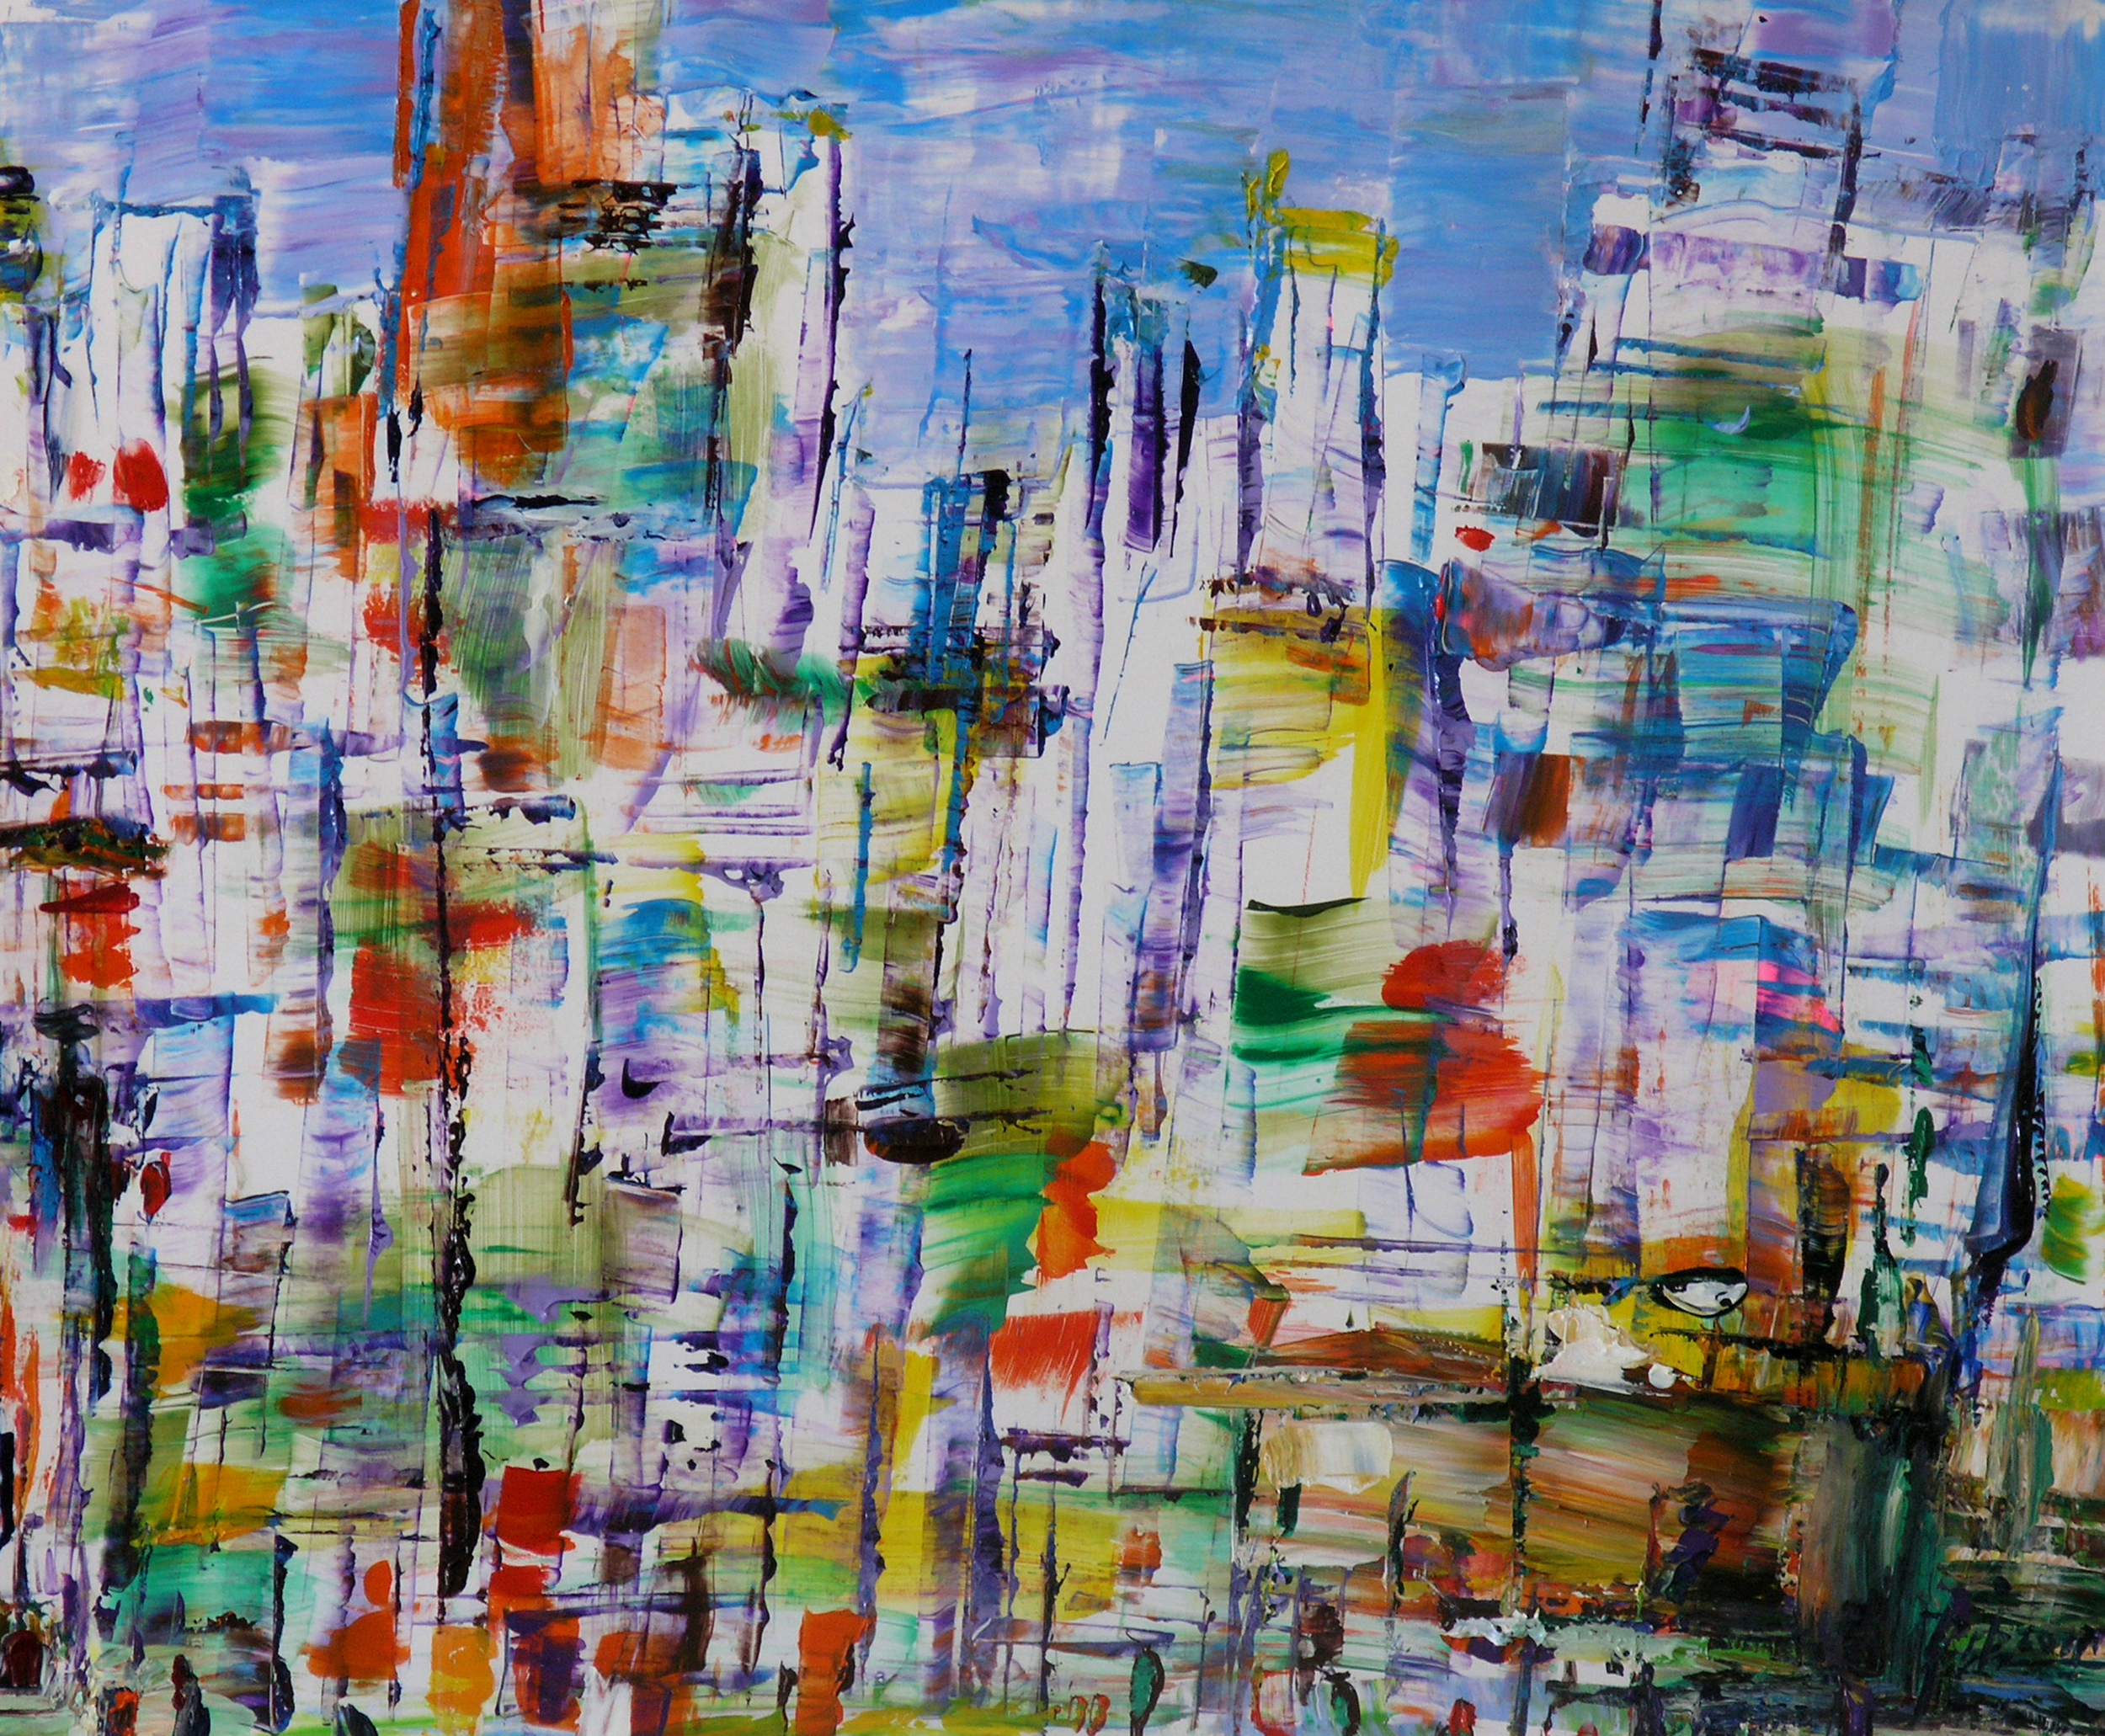 """Wei Kang  The City in My Heart 01, 2010  Acrylic on canvas  20"""" x 24"""""""